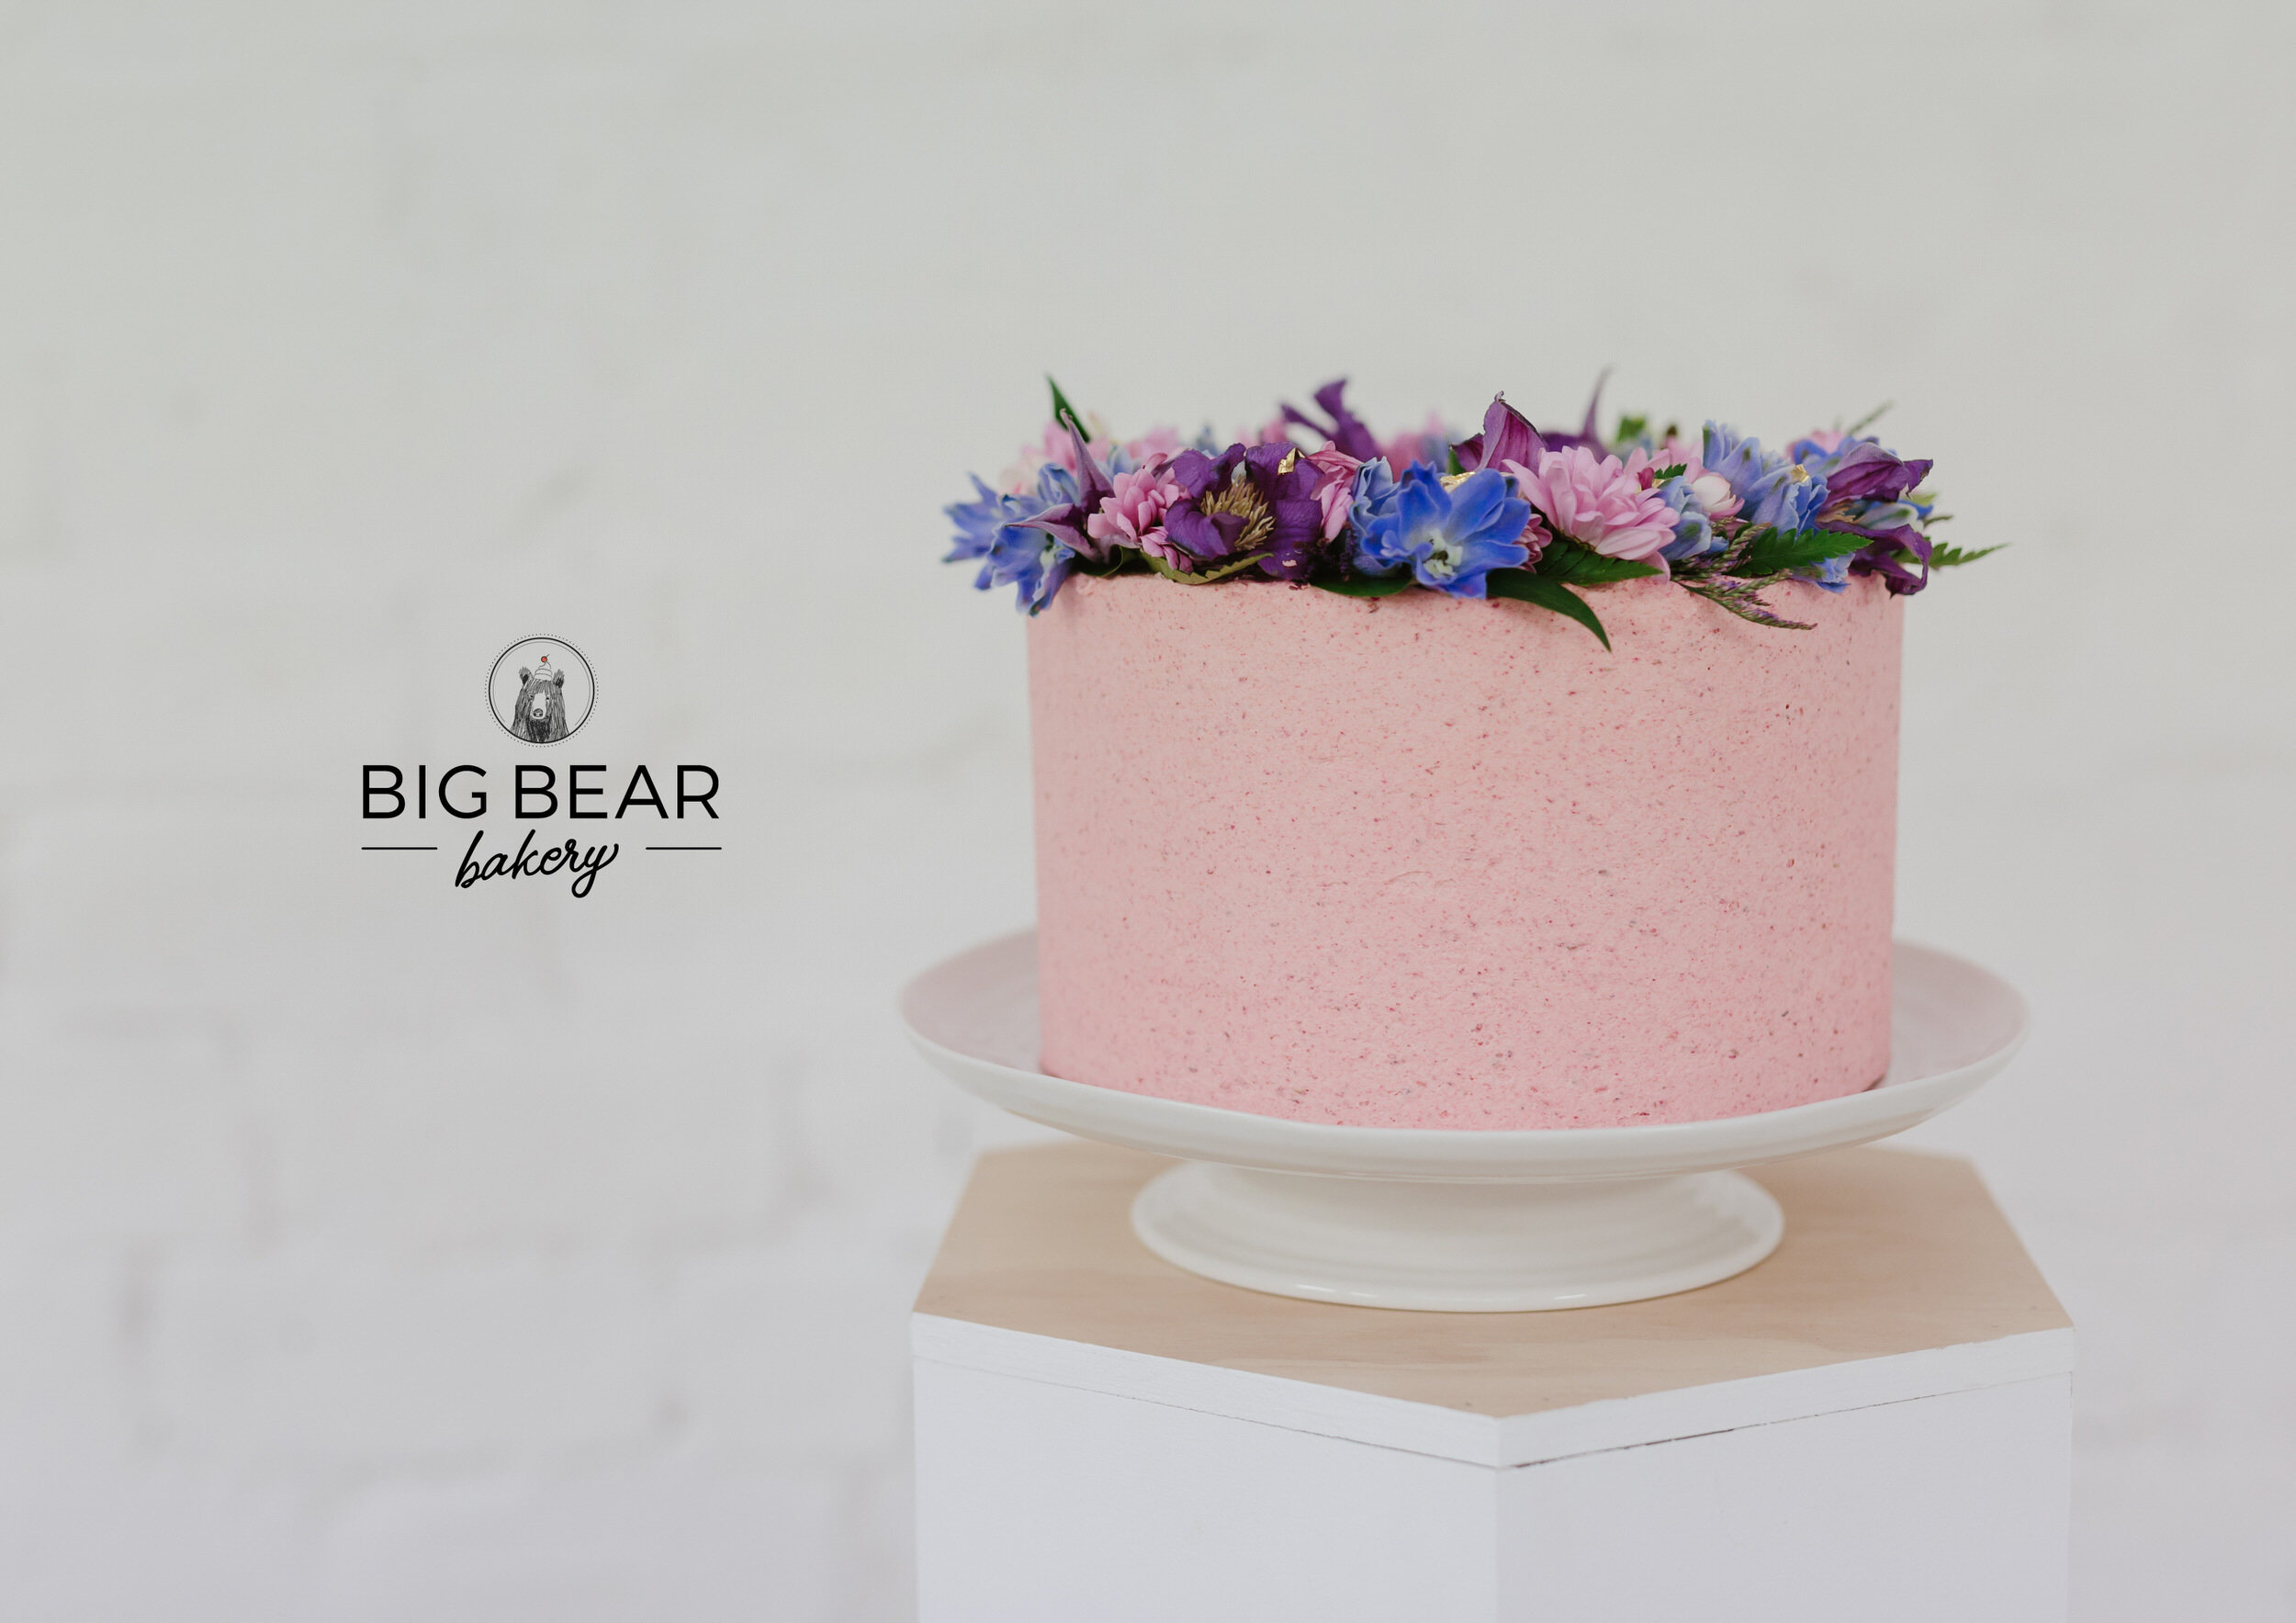 Big-Bear-Bakery-Portfolio15.jpg